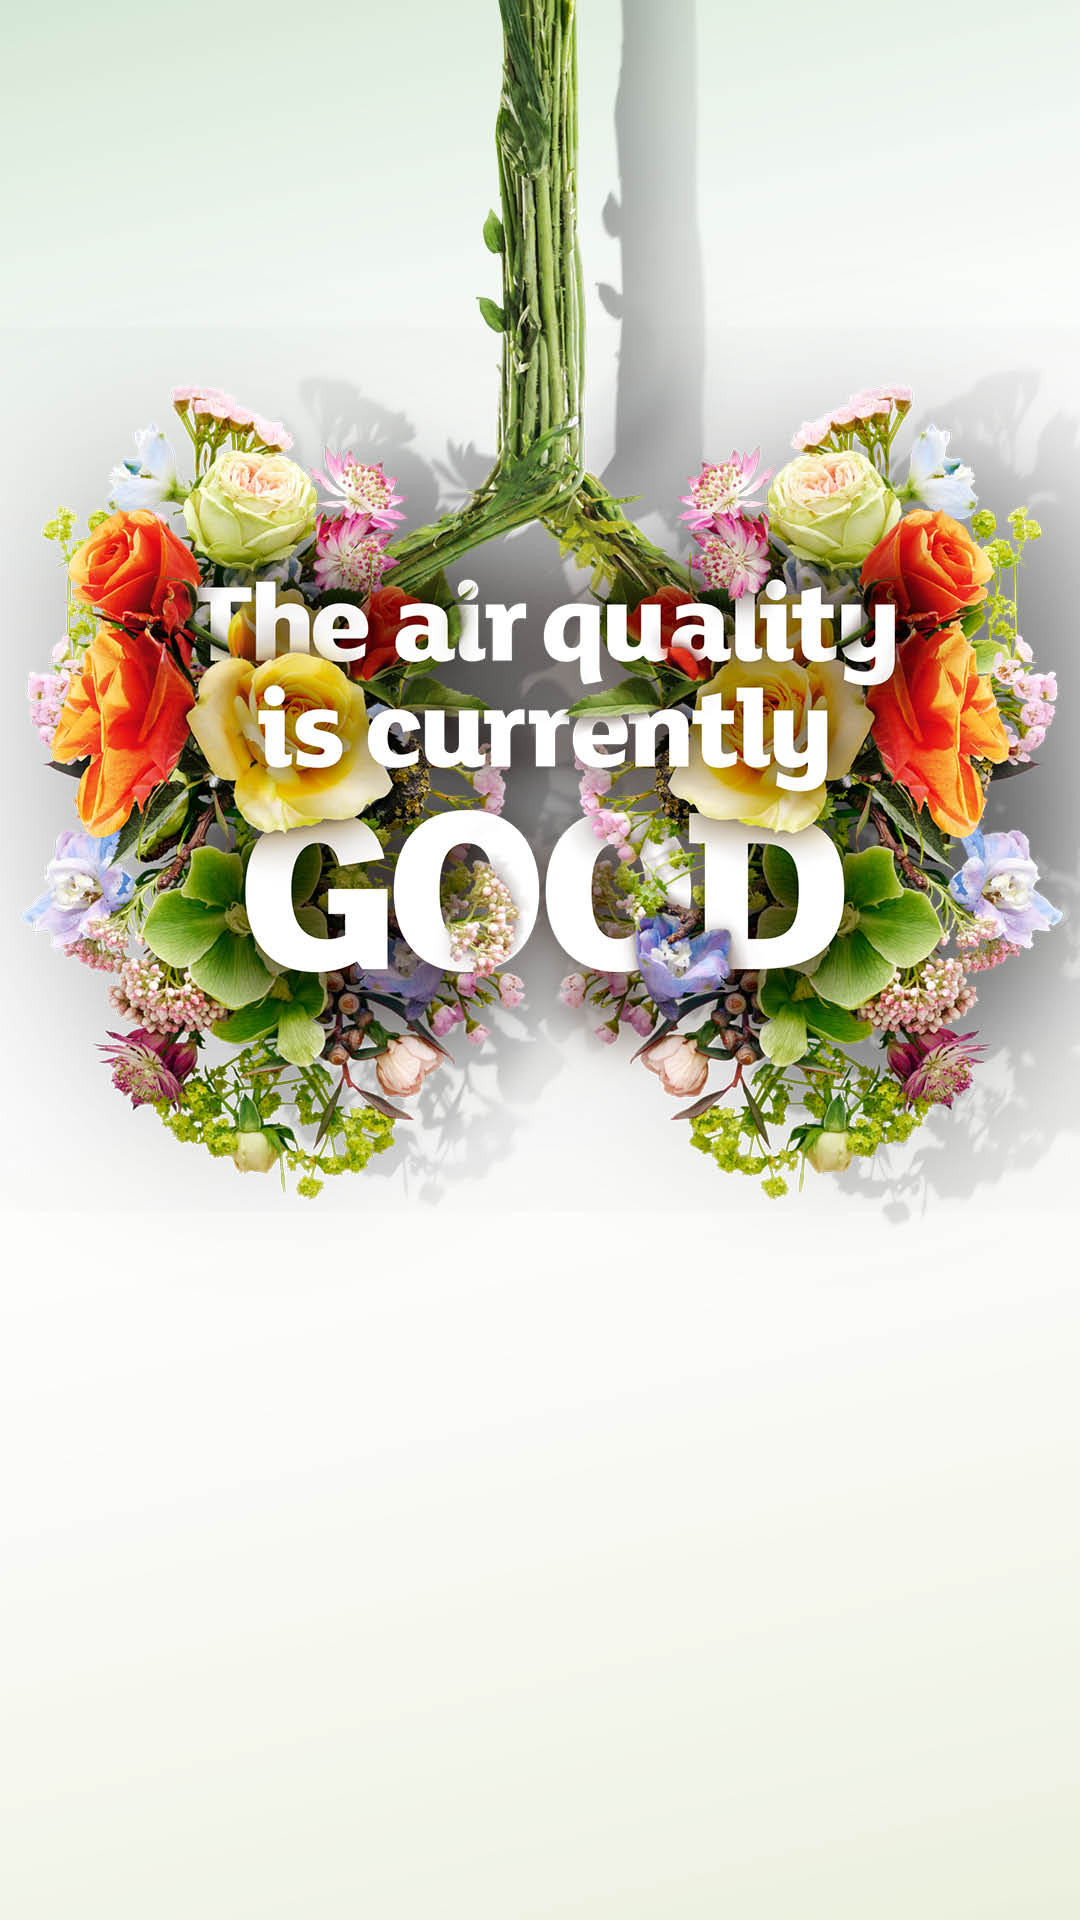 Stories, good air quality